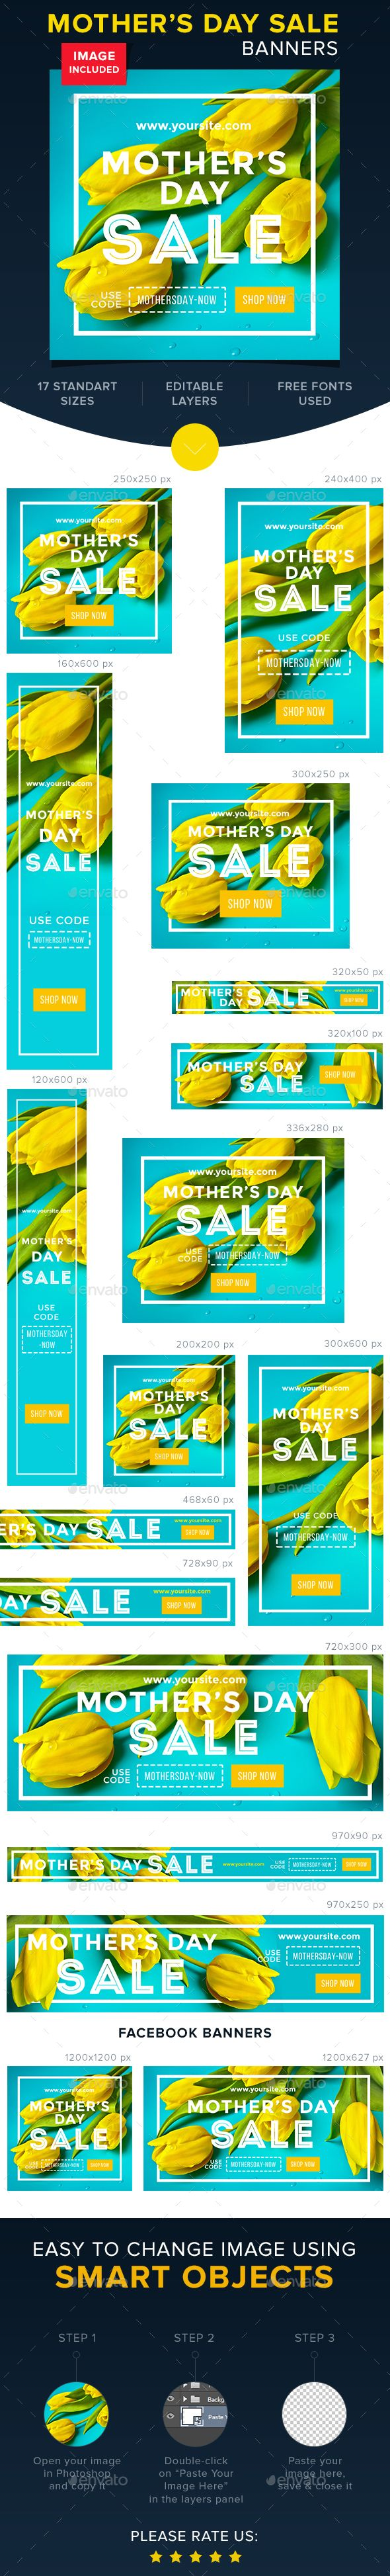 Mother's Day Sale Banners, web design                                                                                                                                                                                 More